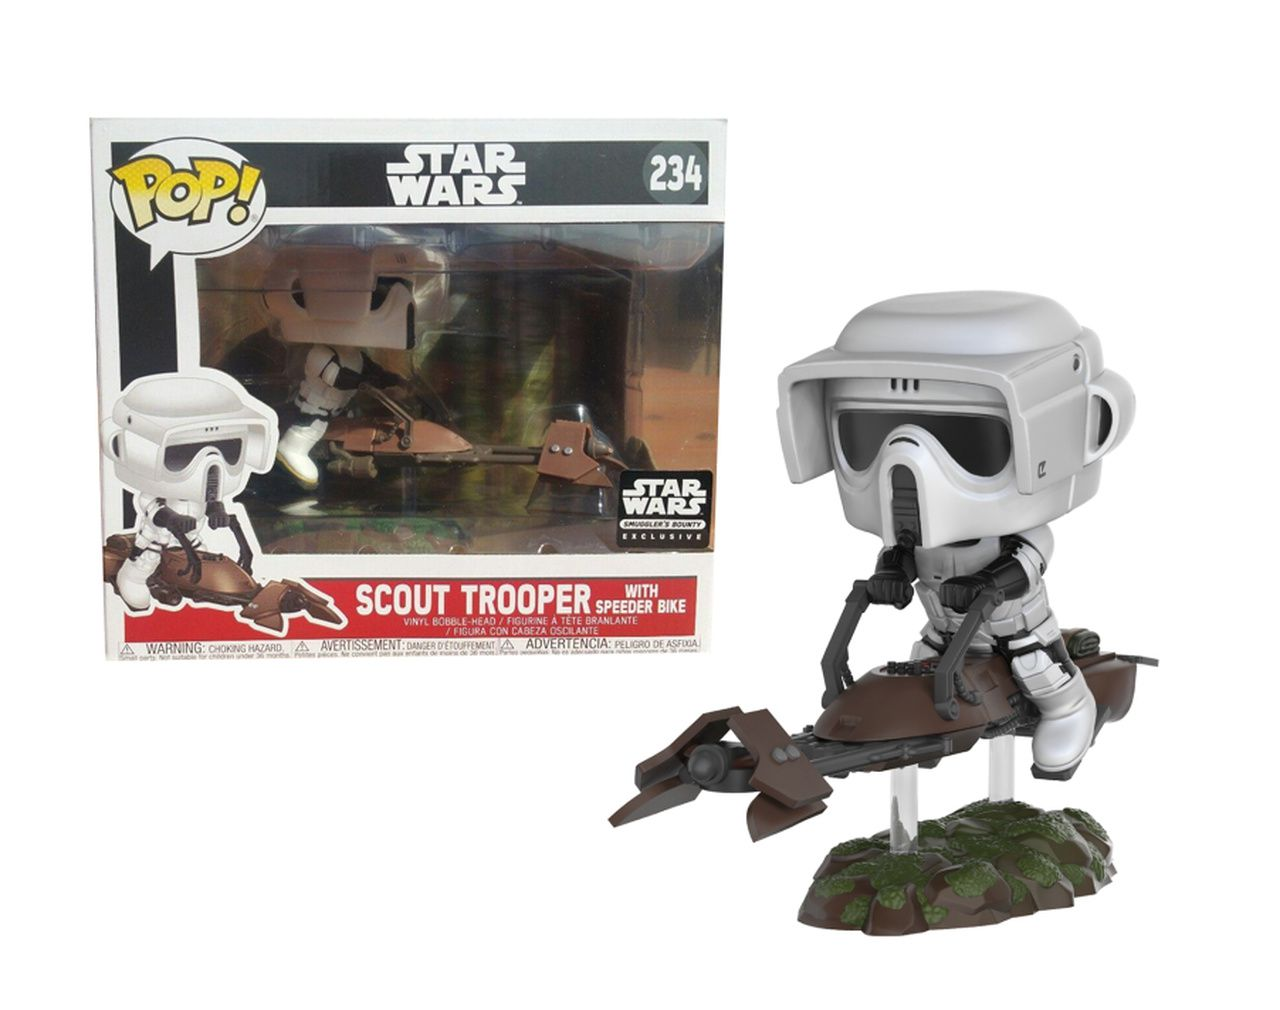 Pop! Scout Trooper (with Speeder Bike): Star Wars (Exclusivo) #234 - Funko